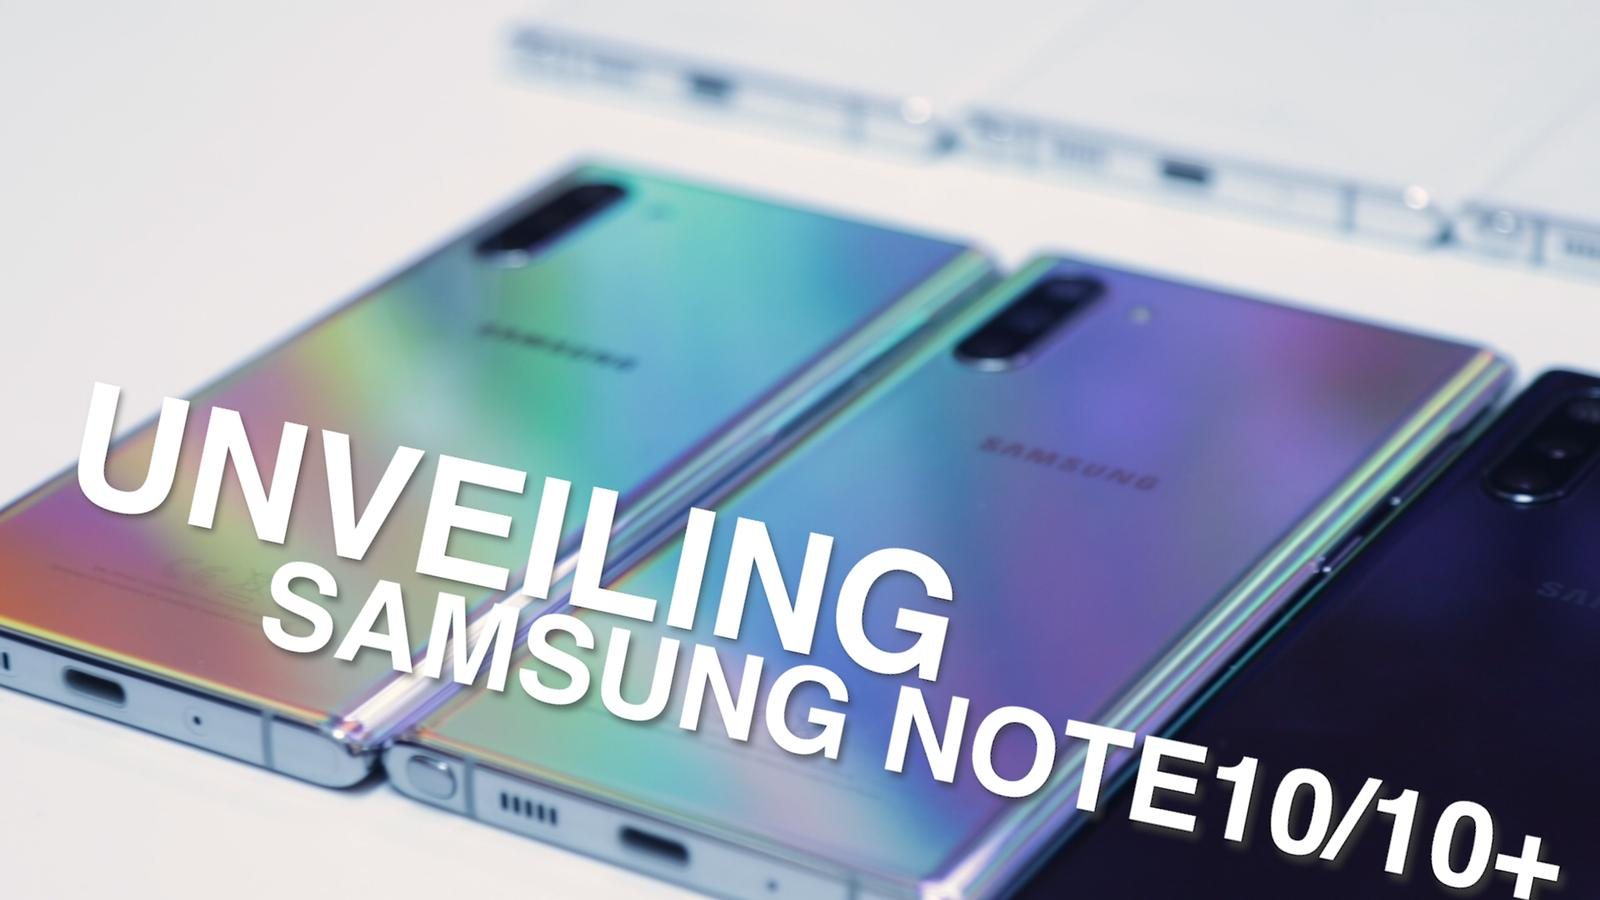 Samsung Galaxy Note10 & Note10+: 8 ways it has improved over the Note9